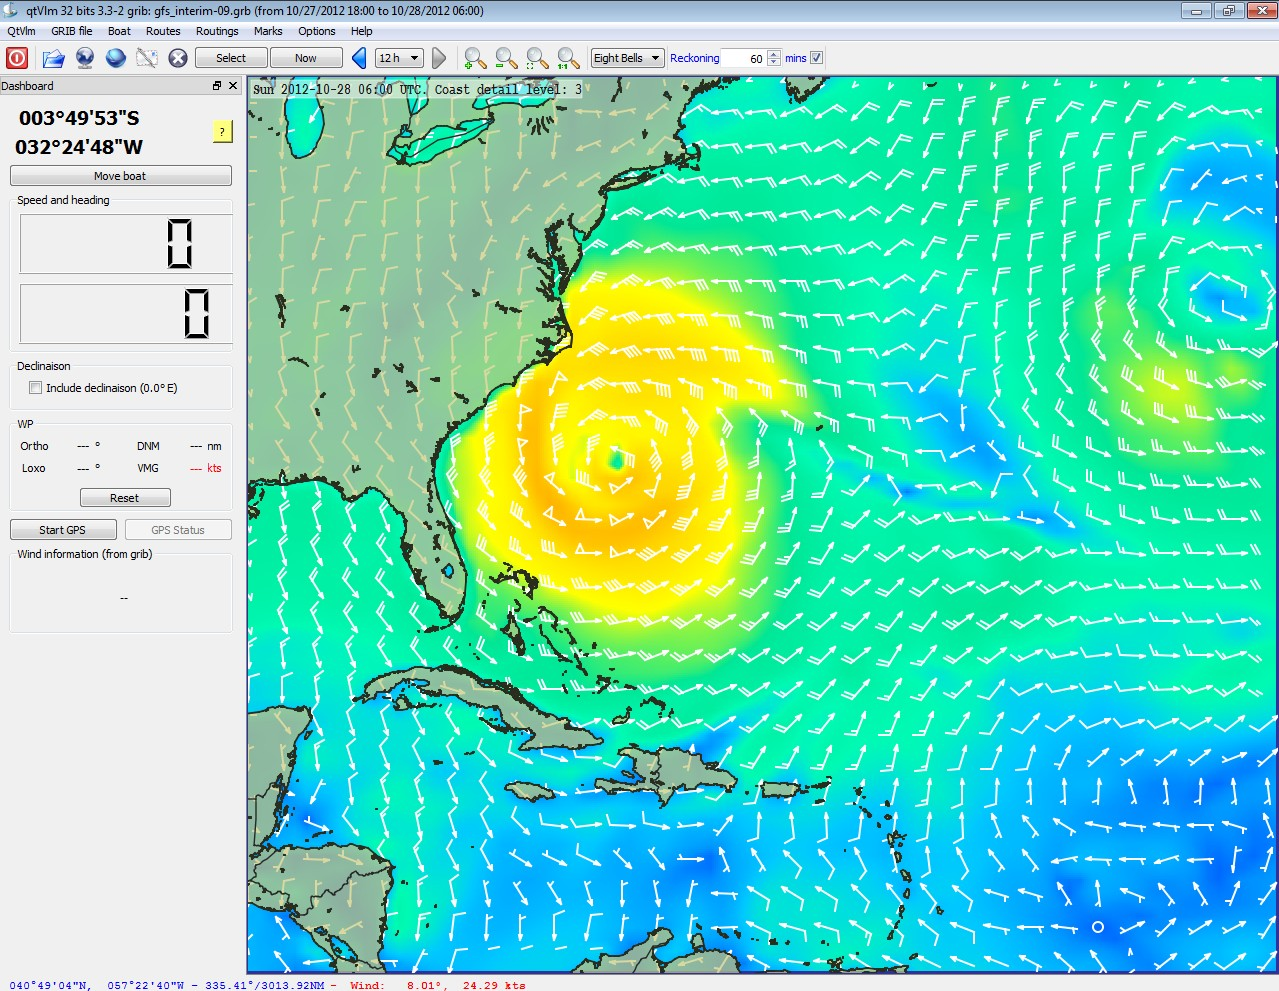 Click image for larger version  Name:Yachtmarine_119 Oct. 28 16.22.jpg Views:142 Size:369.9 KB ID:48911